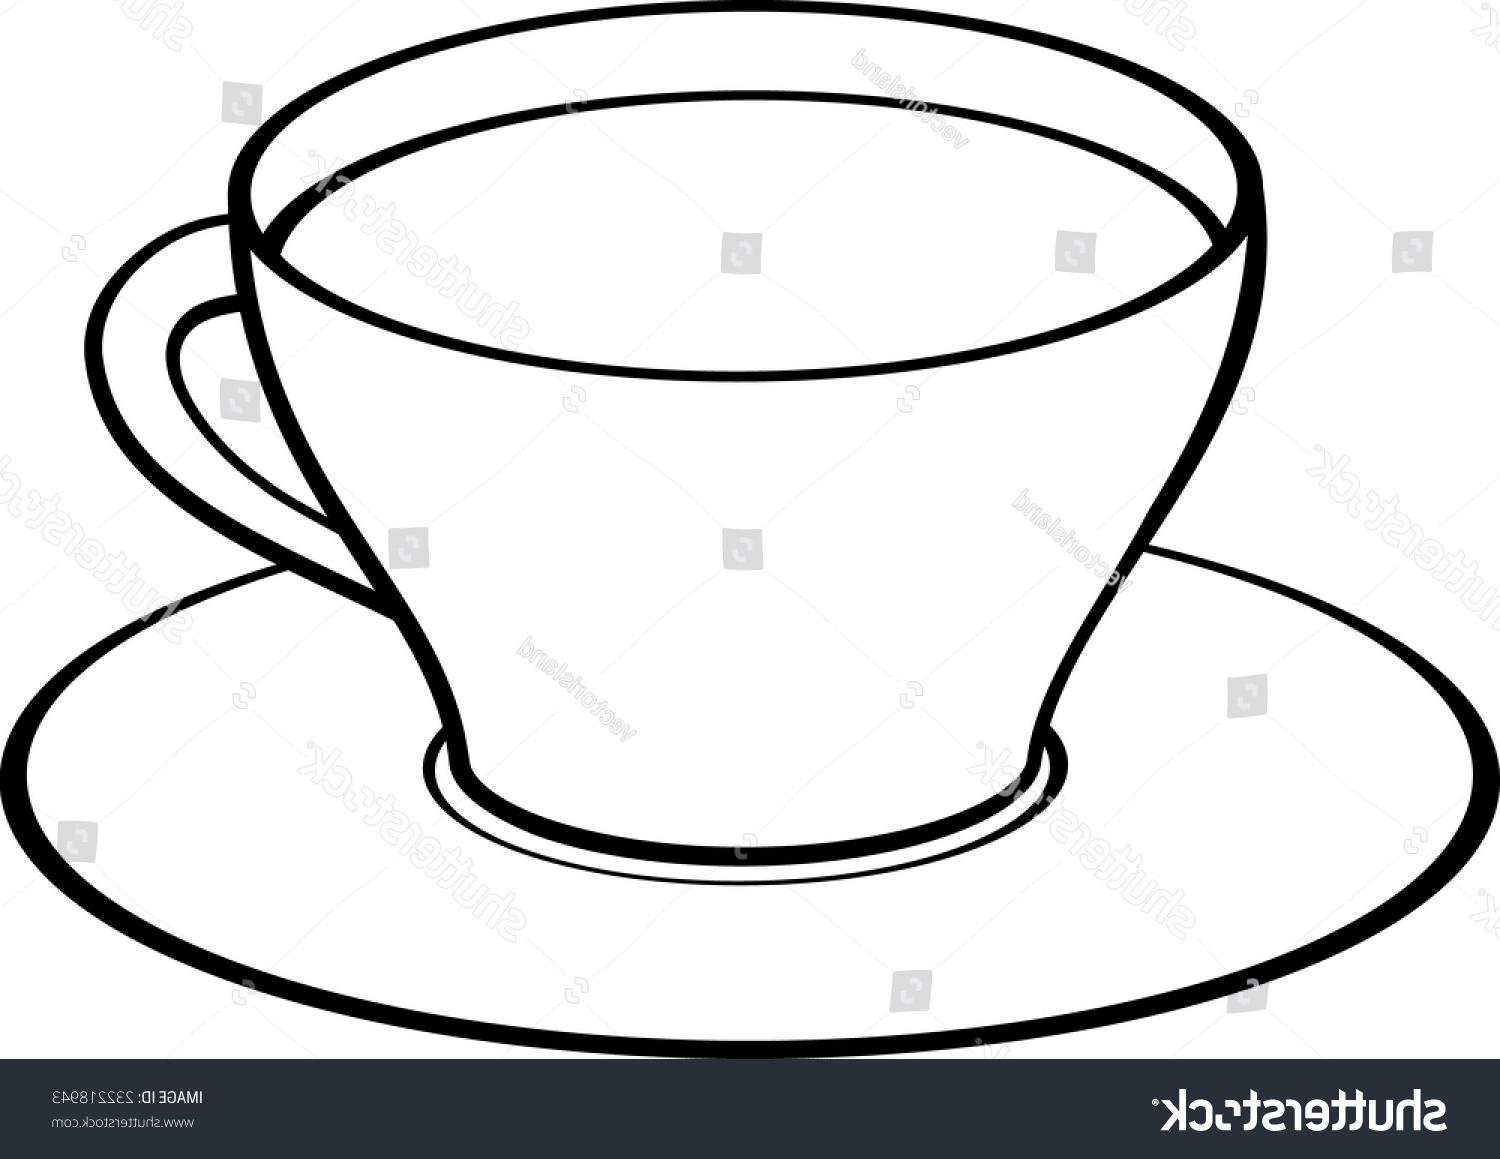 1500x1159 Best Hd Stock Vector Coffee Or Tea Cup With Saucer File Free